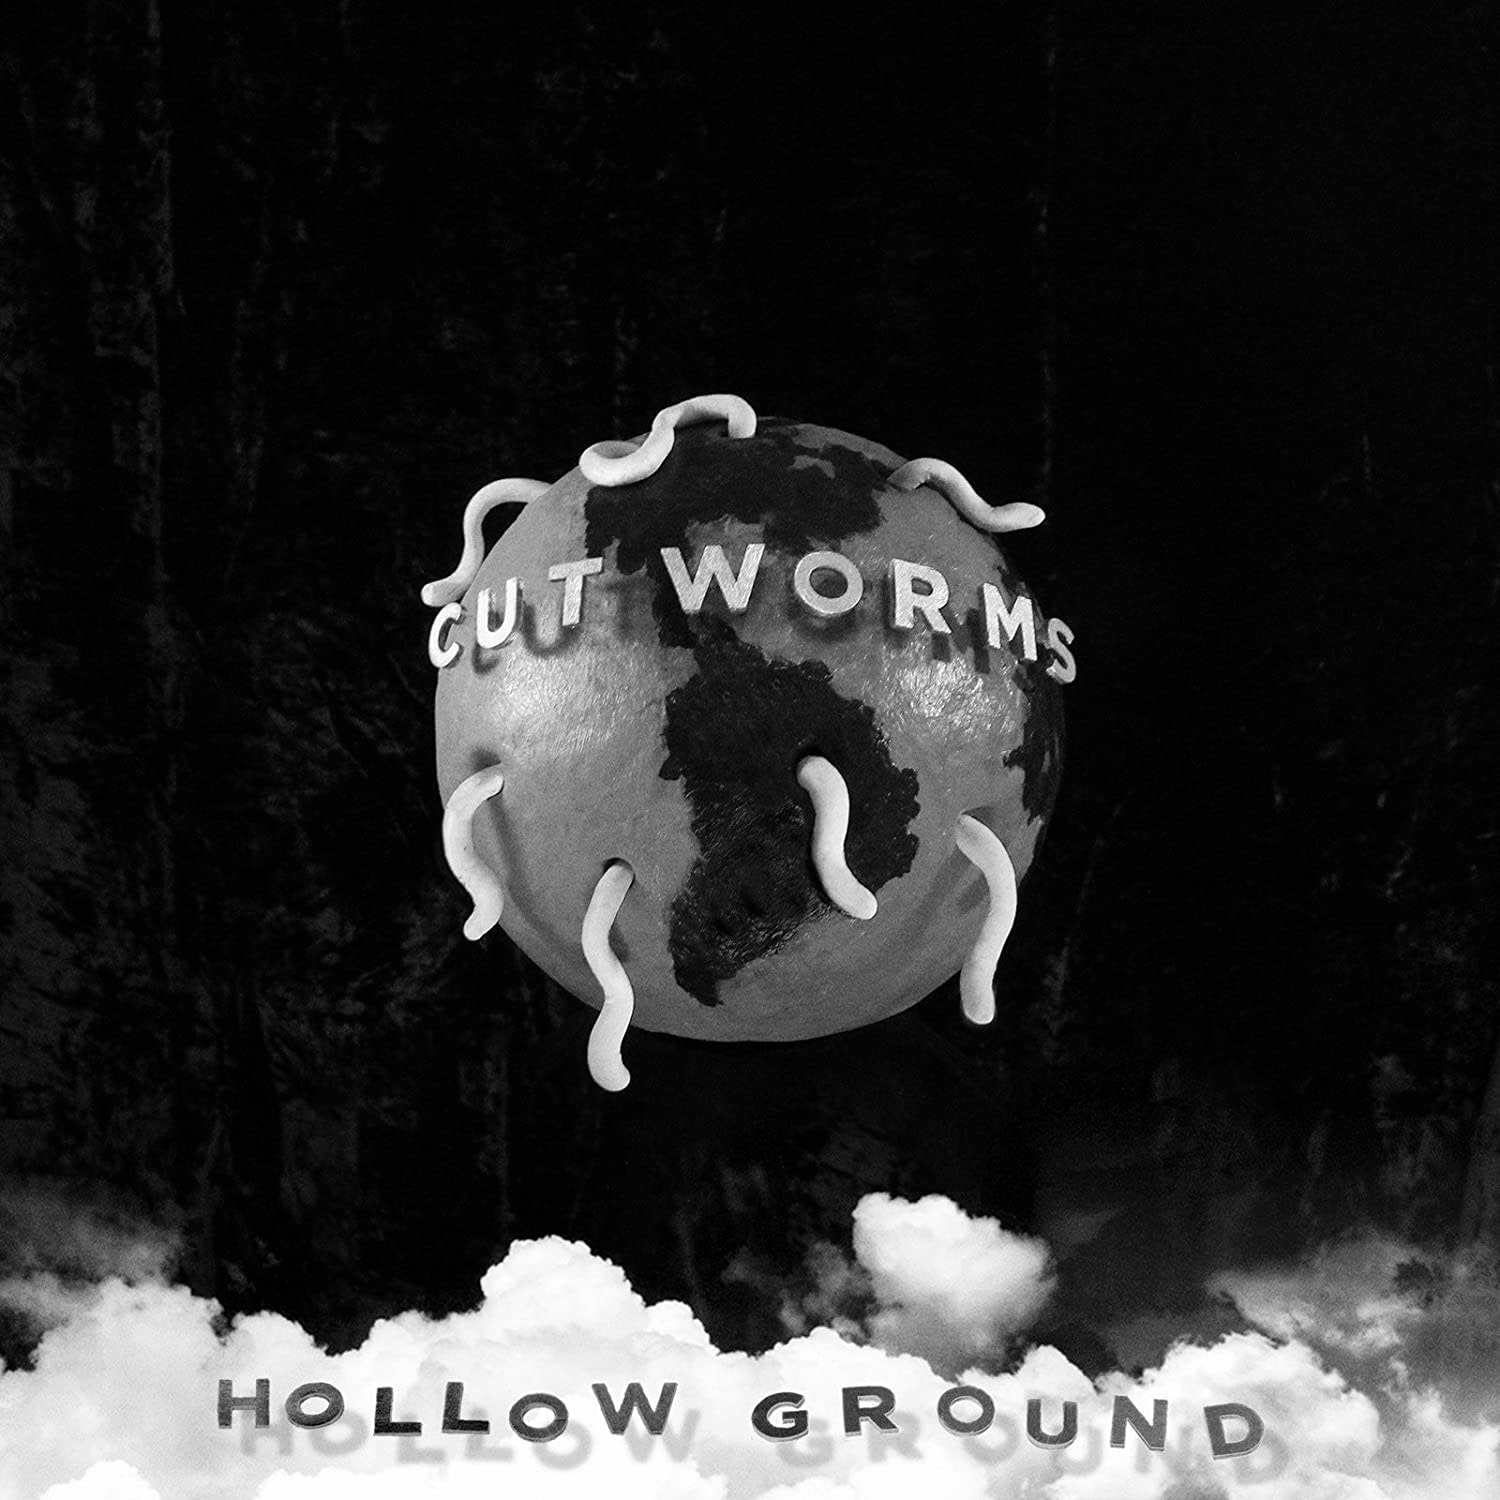 Cut Worms – Hollow Ground